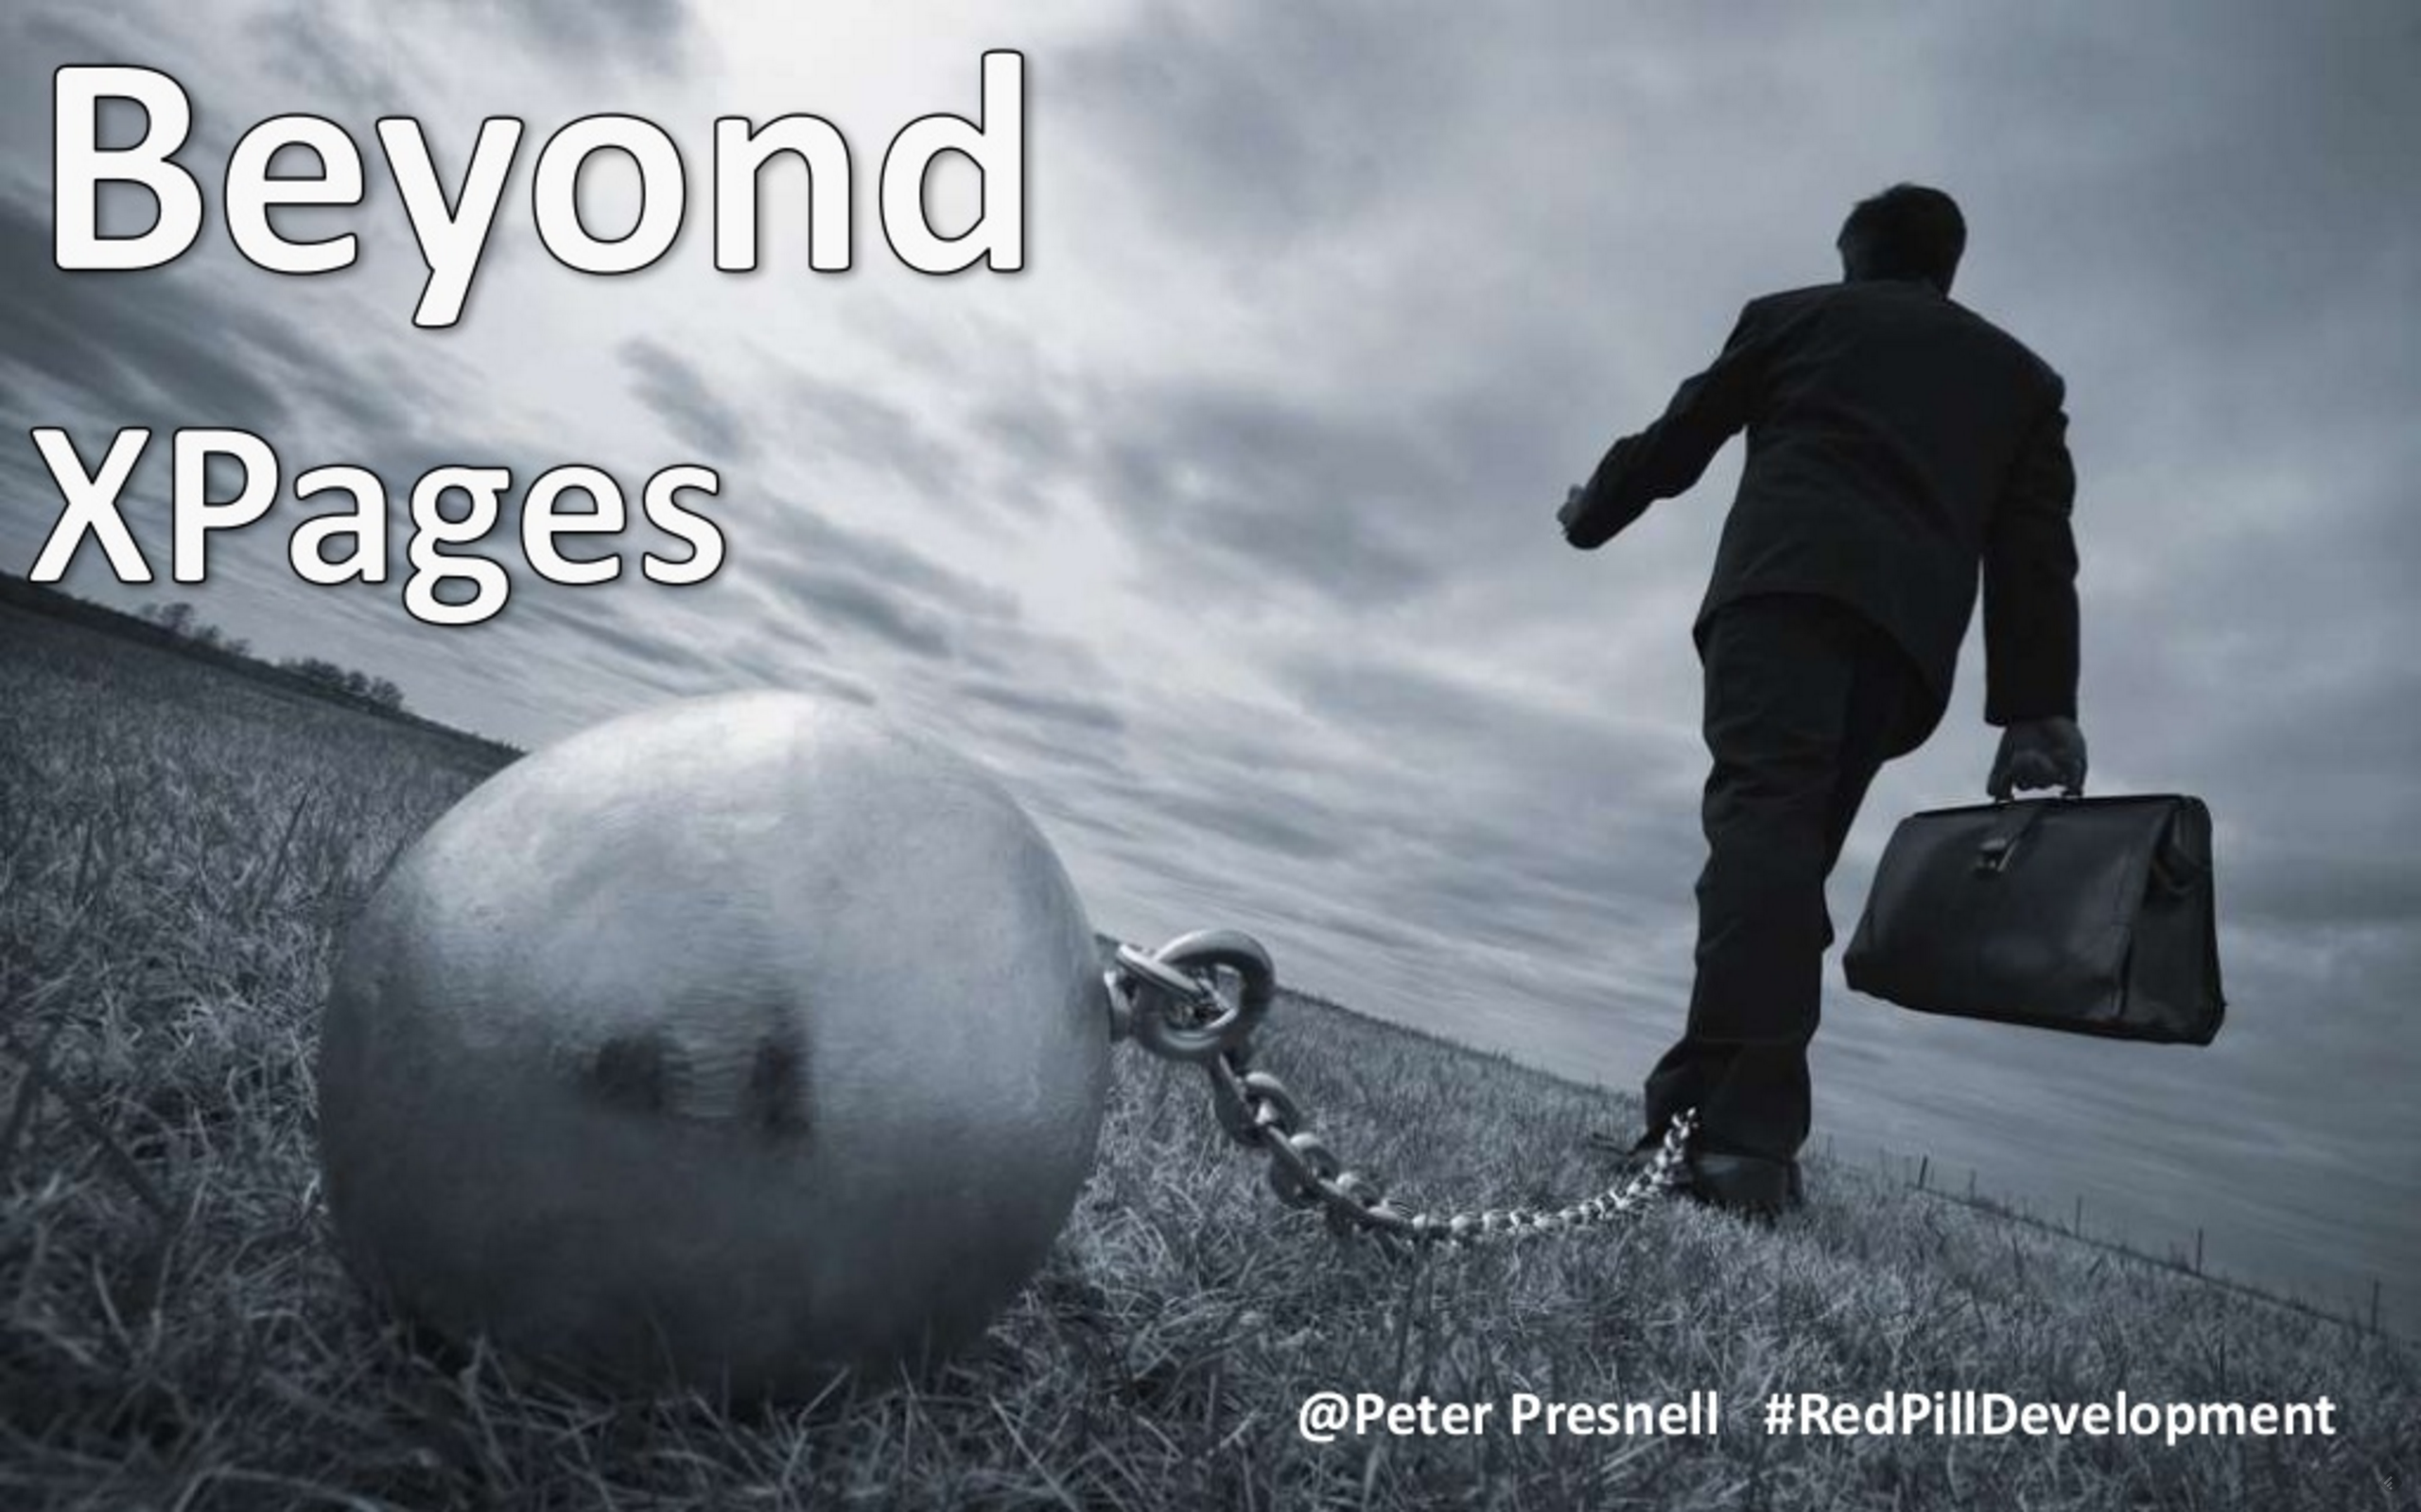 Beyond Xpages